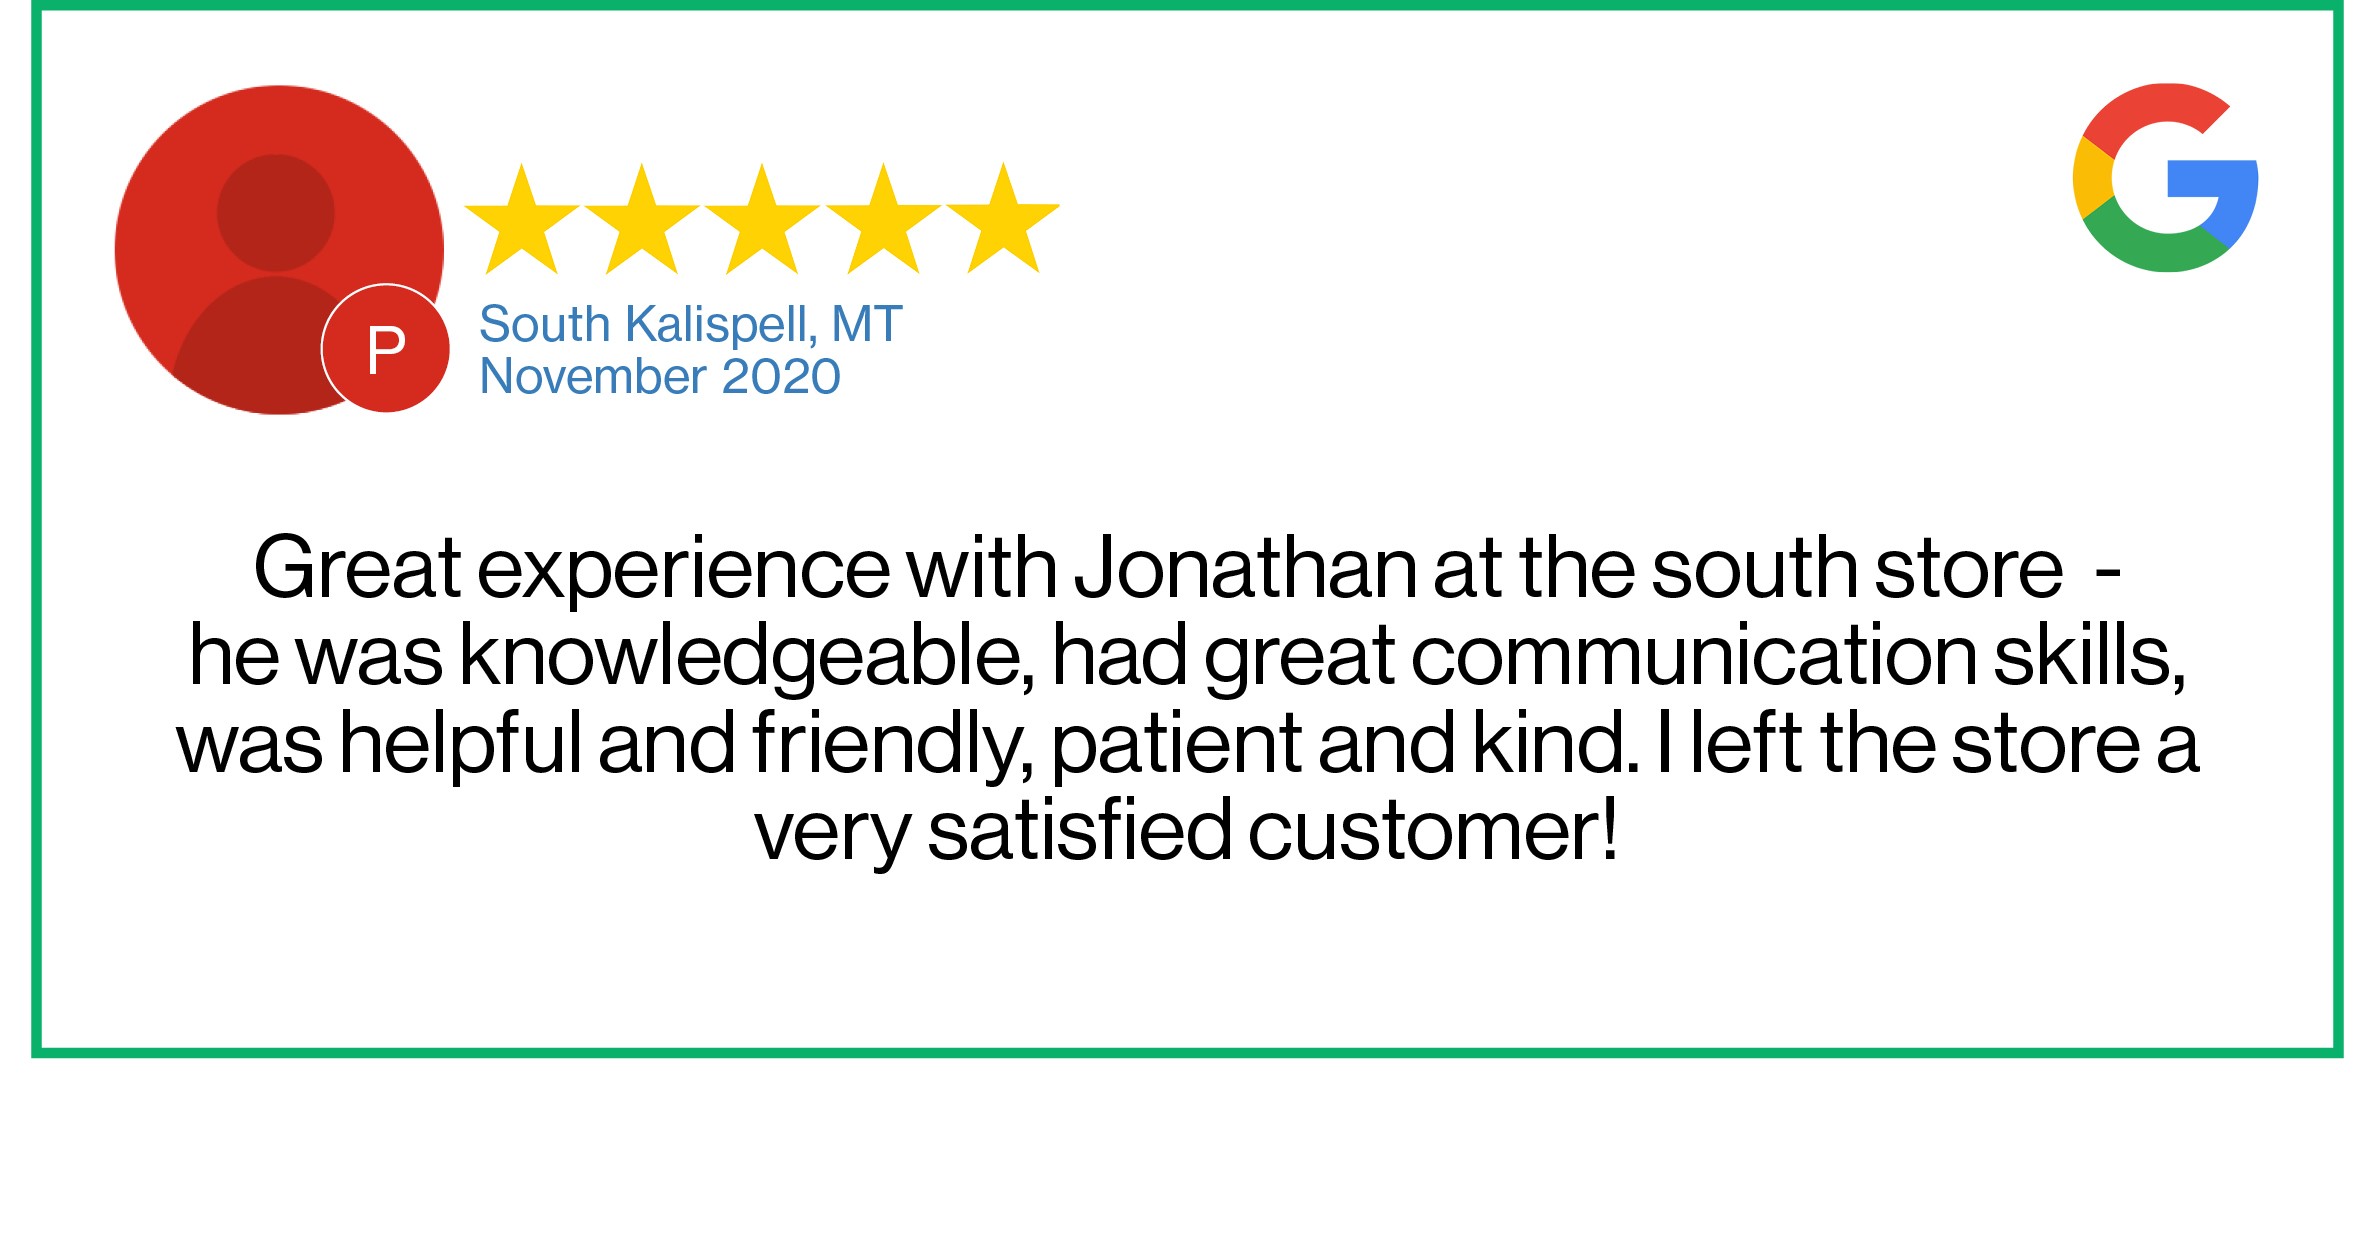 Check out this recent customer review about the Verizon Cellular Plus store in Kalispell, Montana.